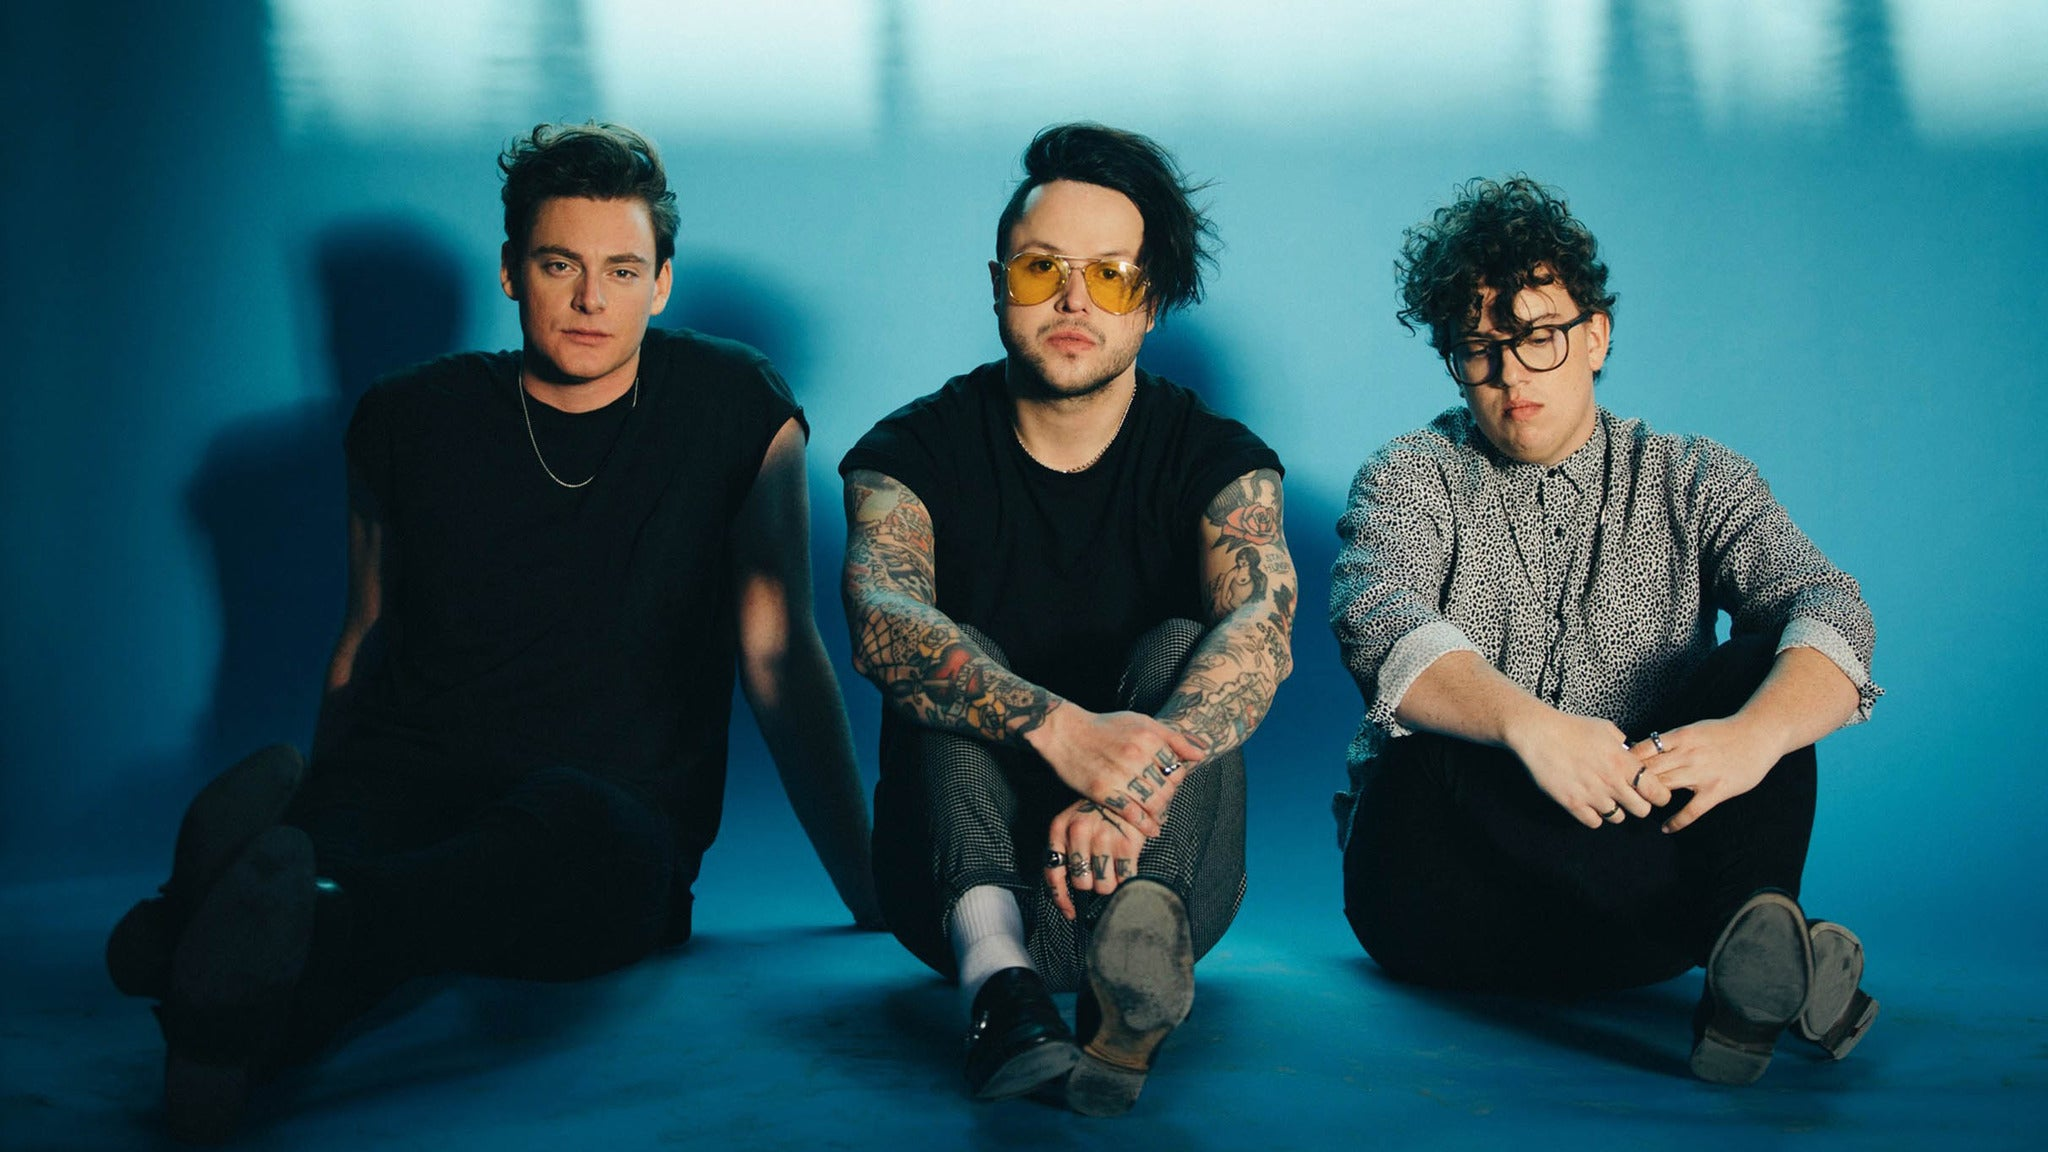 lovelytheband - the finding it hard to smile tour